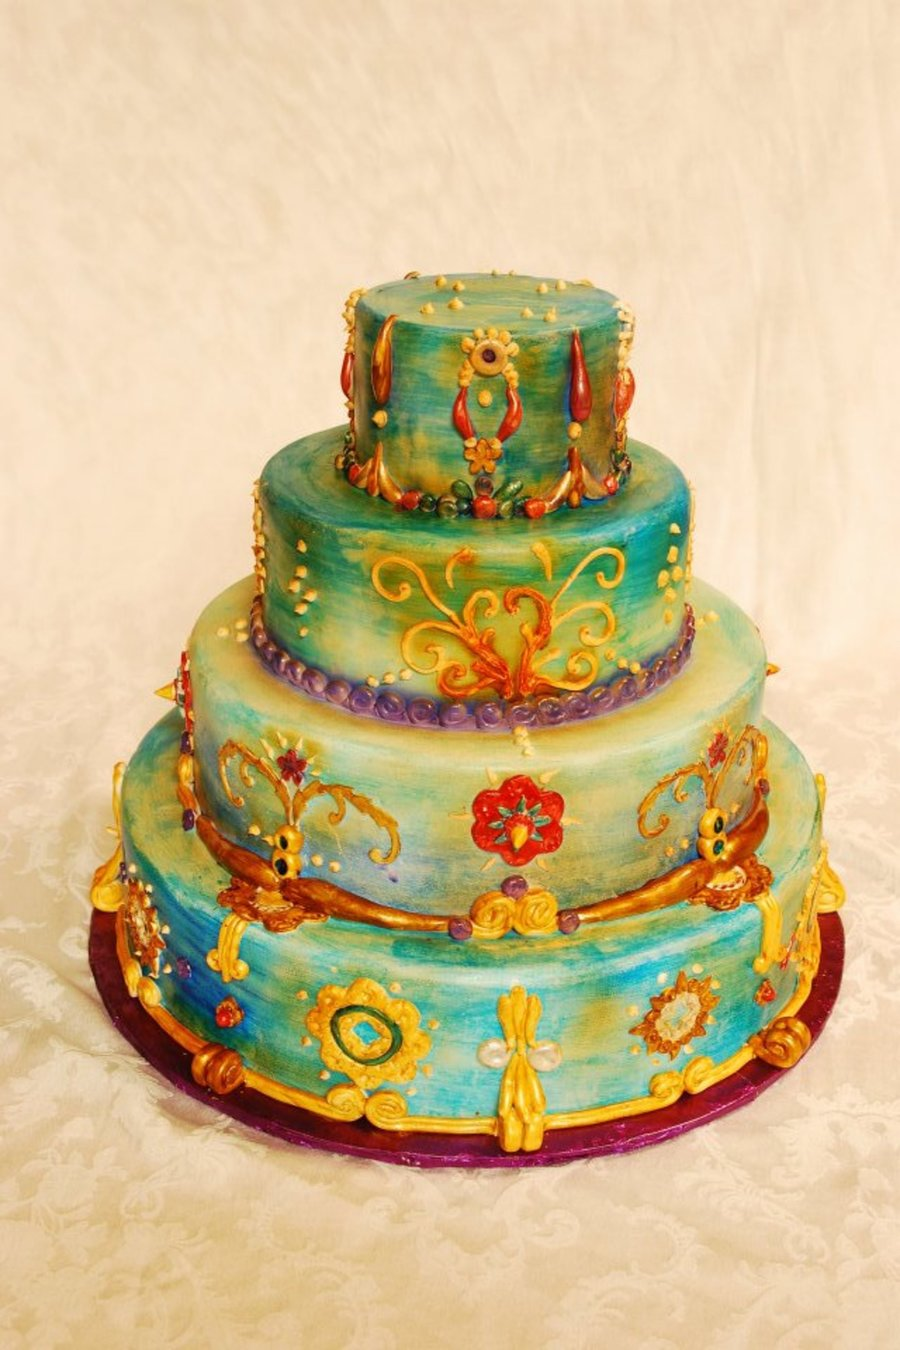 East Indian Inspired Wedding Cake On Central